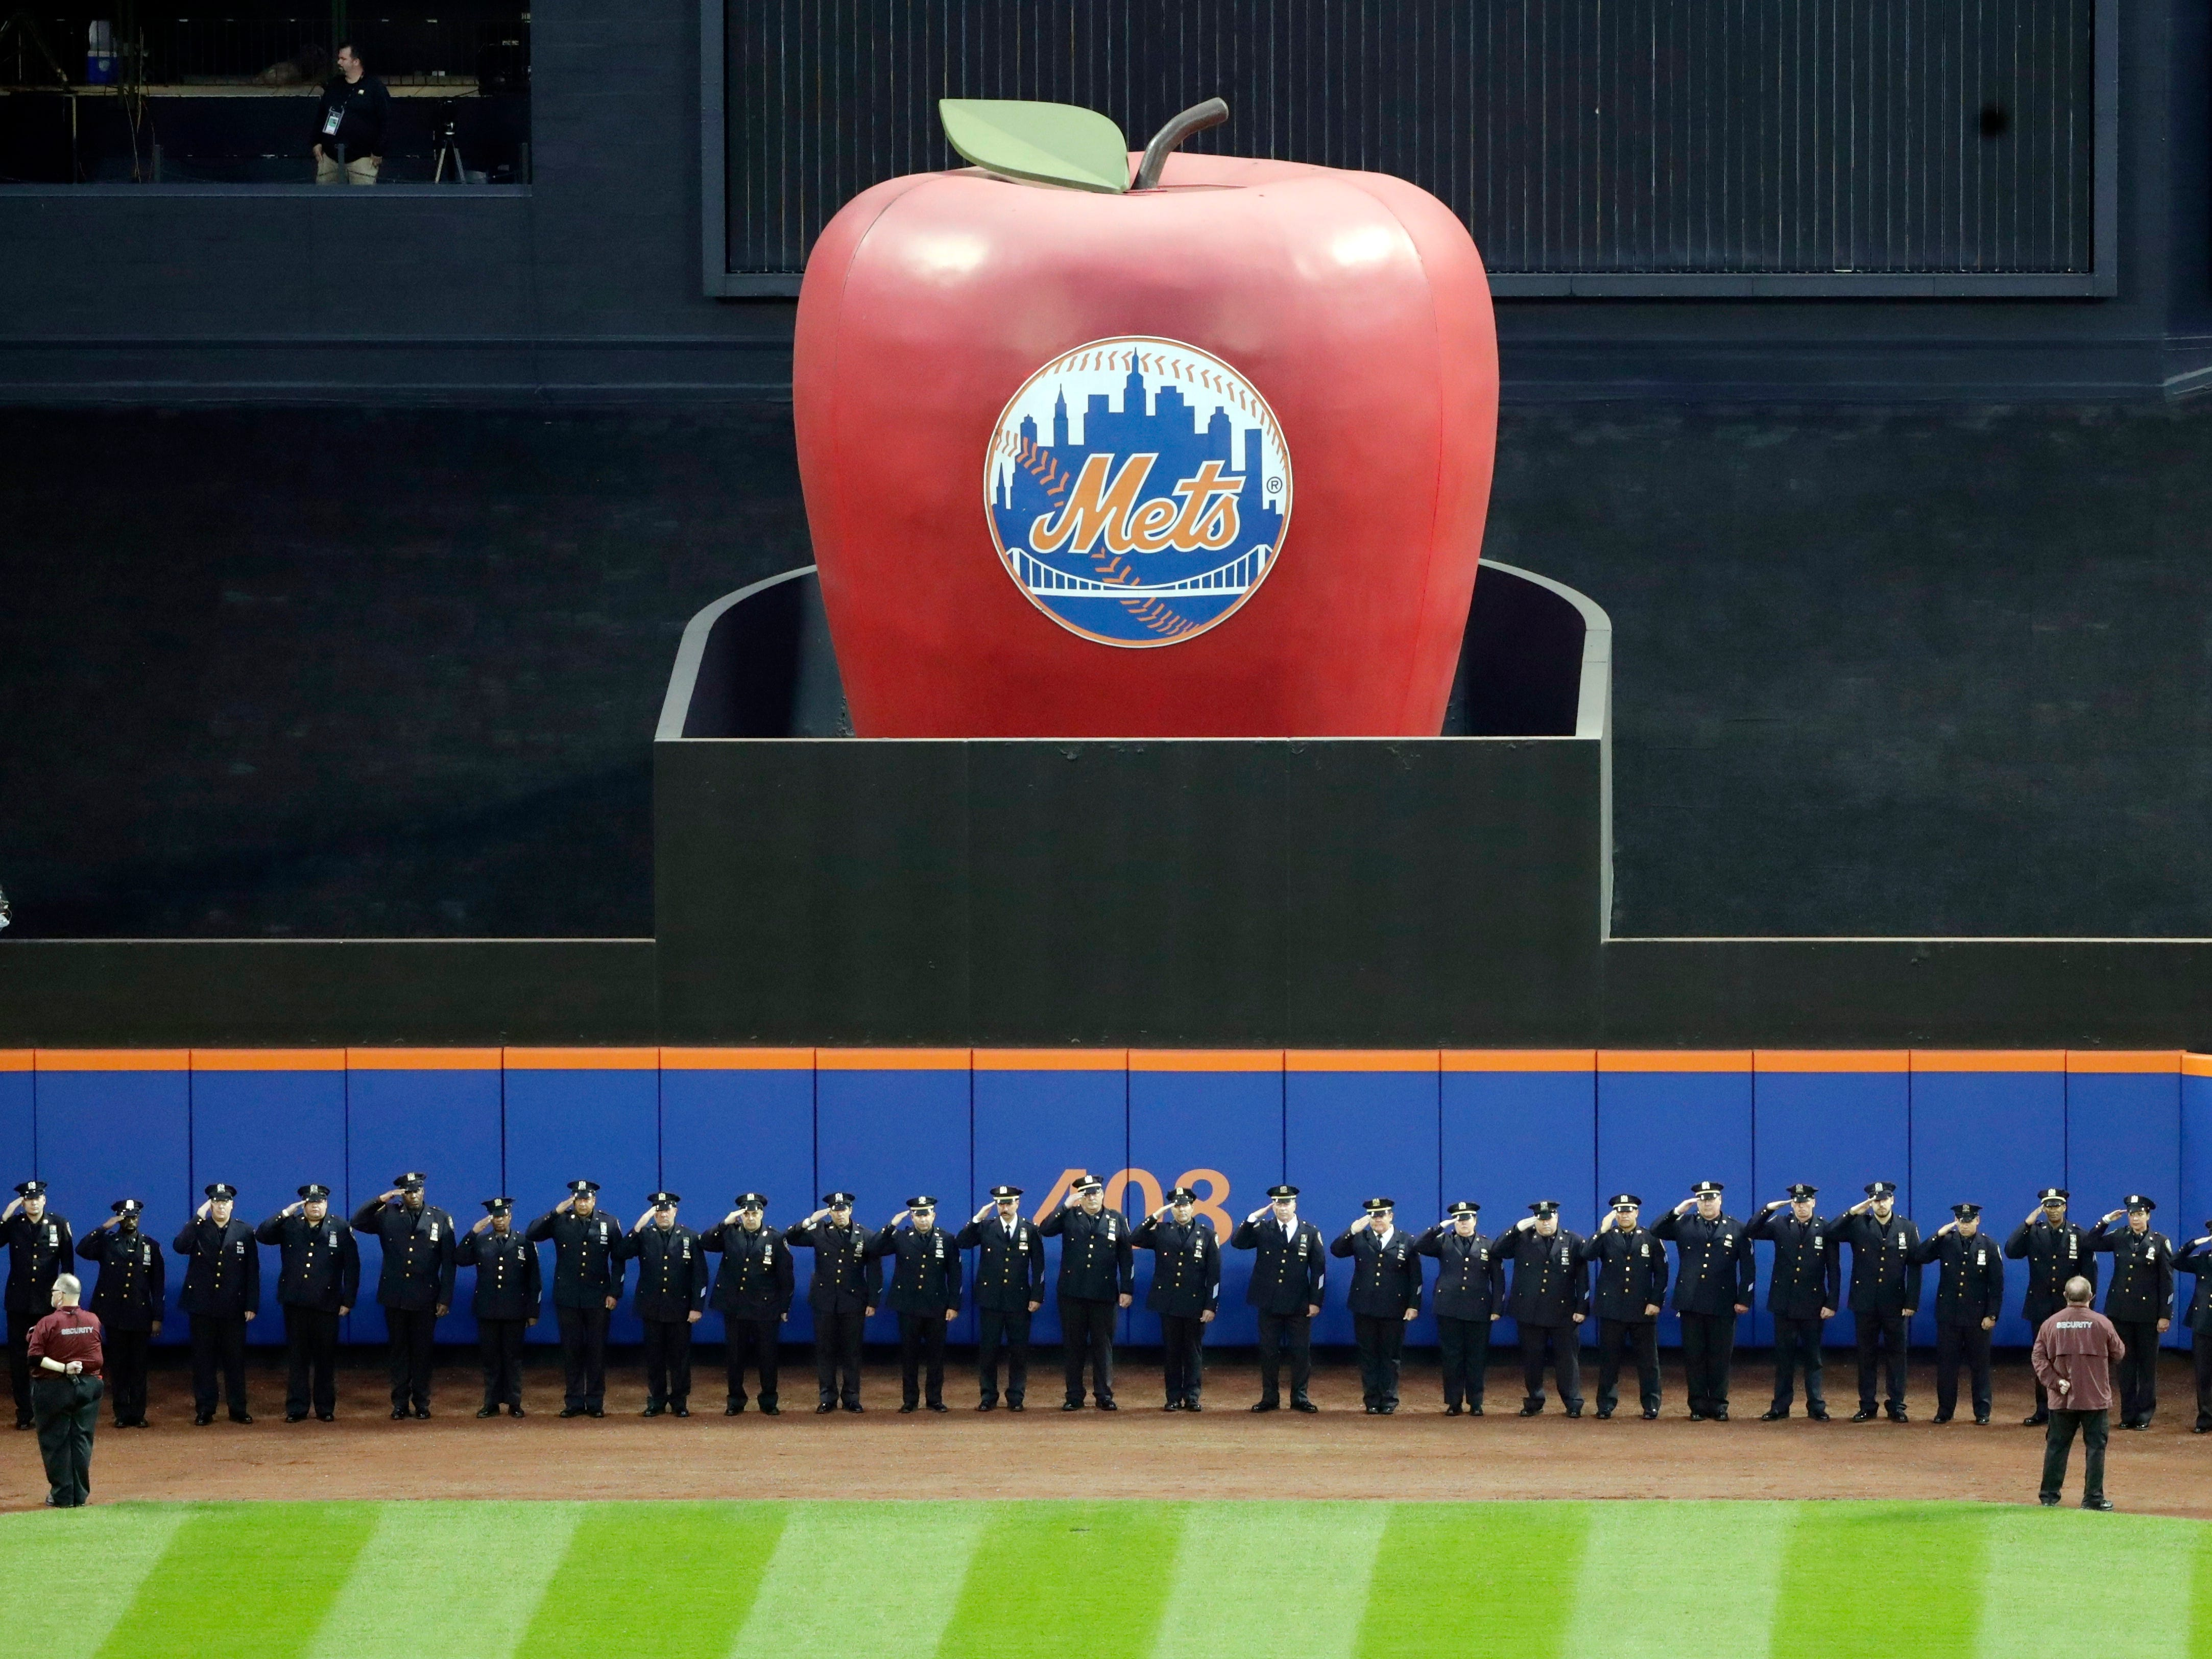 Members of the New York Police Department salute during the pregame ceremony of a baseball game between the New York Mets and the Miami Marlins, Tuesday, Sept. 11, 2018, in New York.